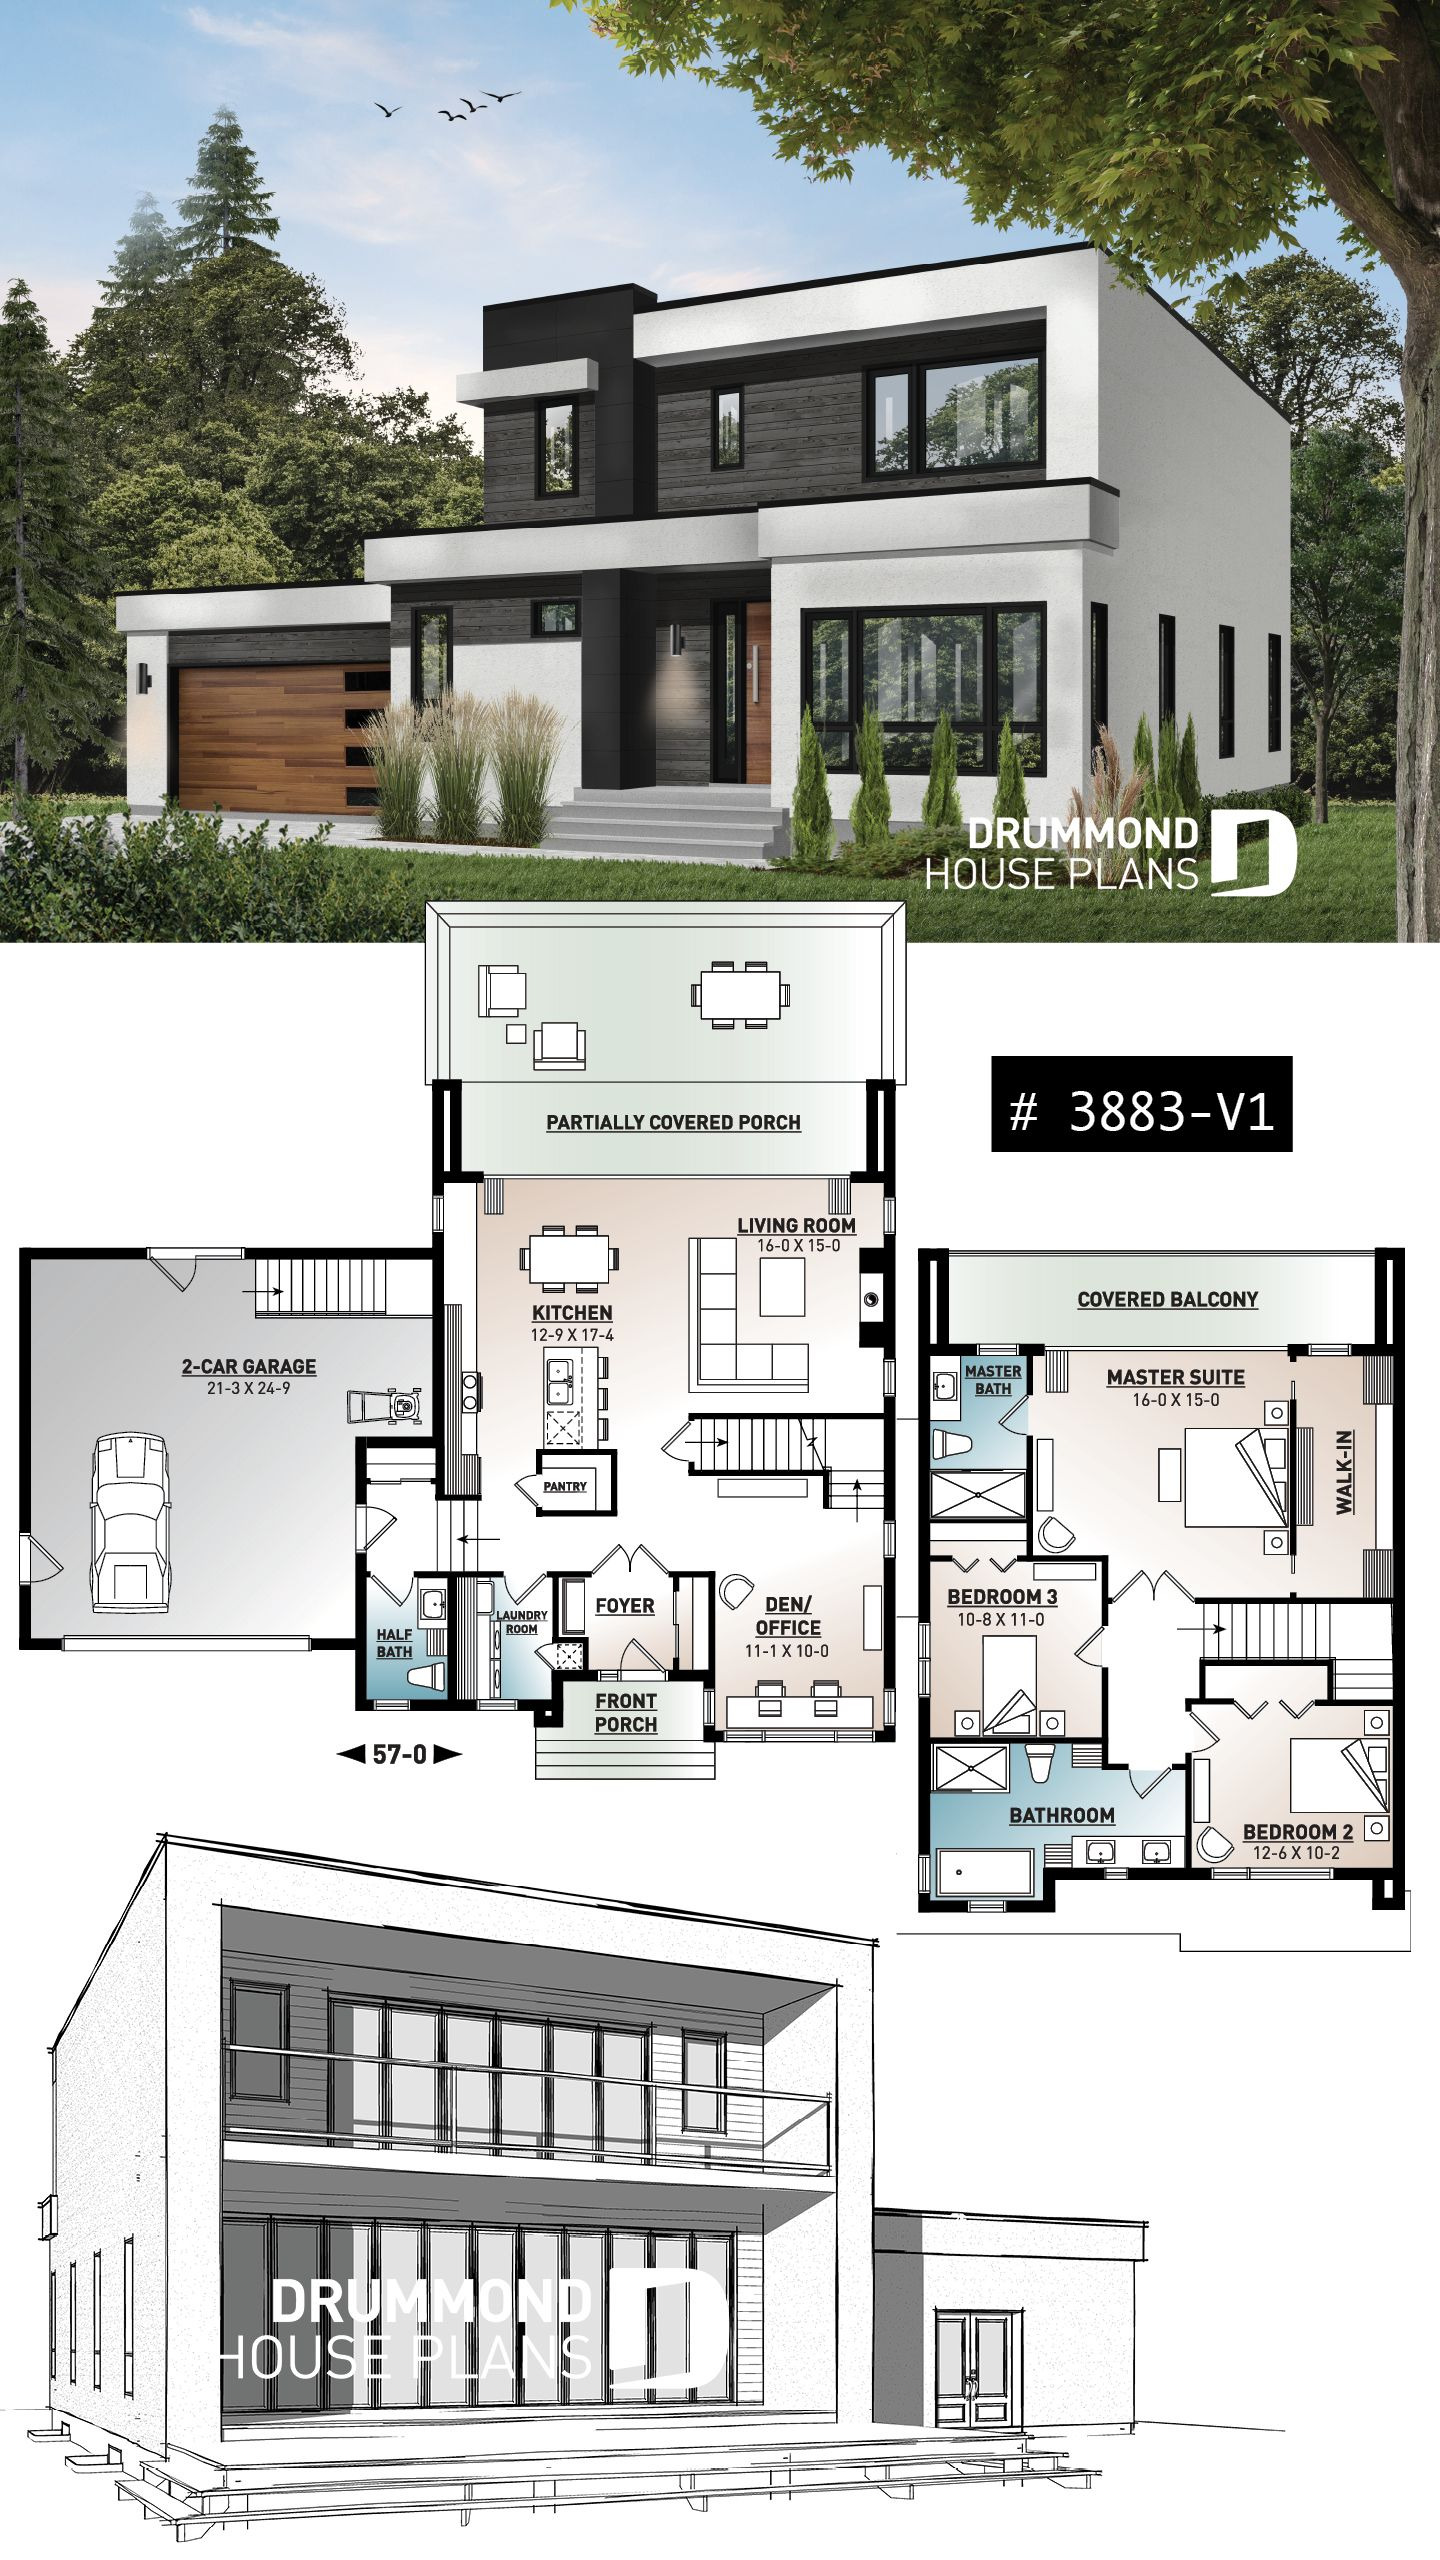 House Plans Designs with Photos Beautiful House Plan Es 2 No 3883 V1